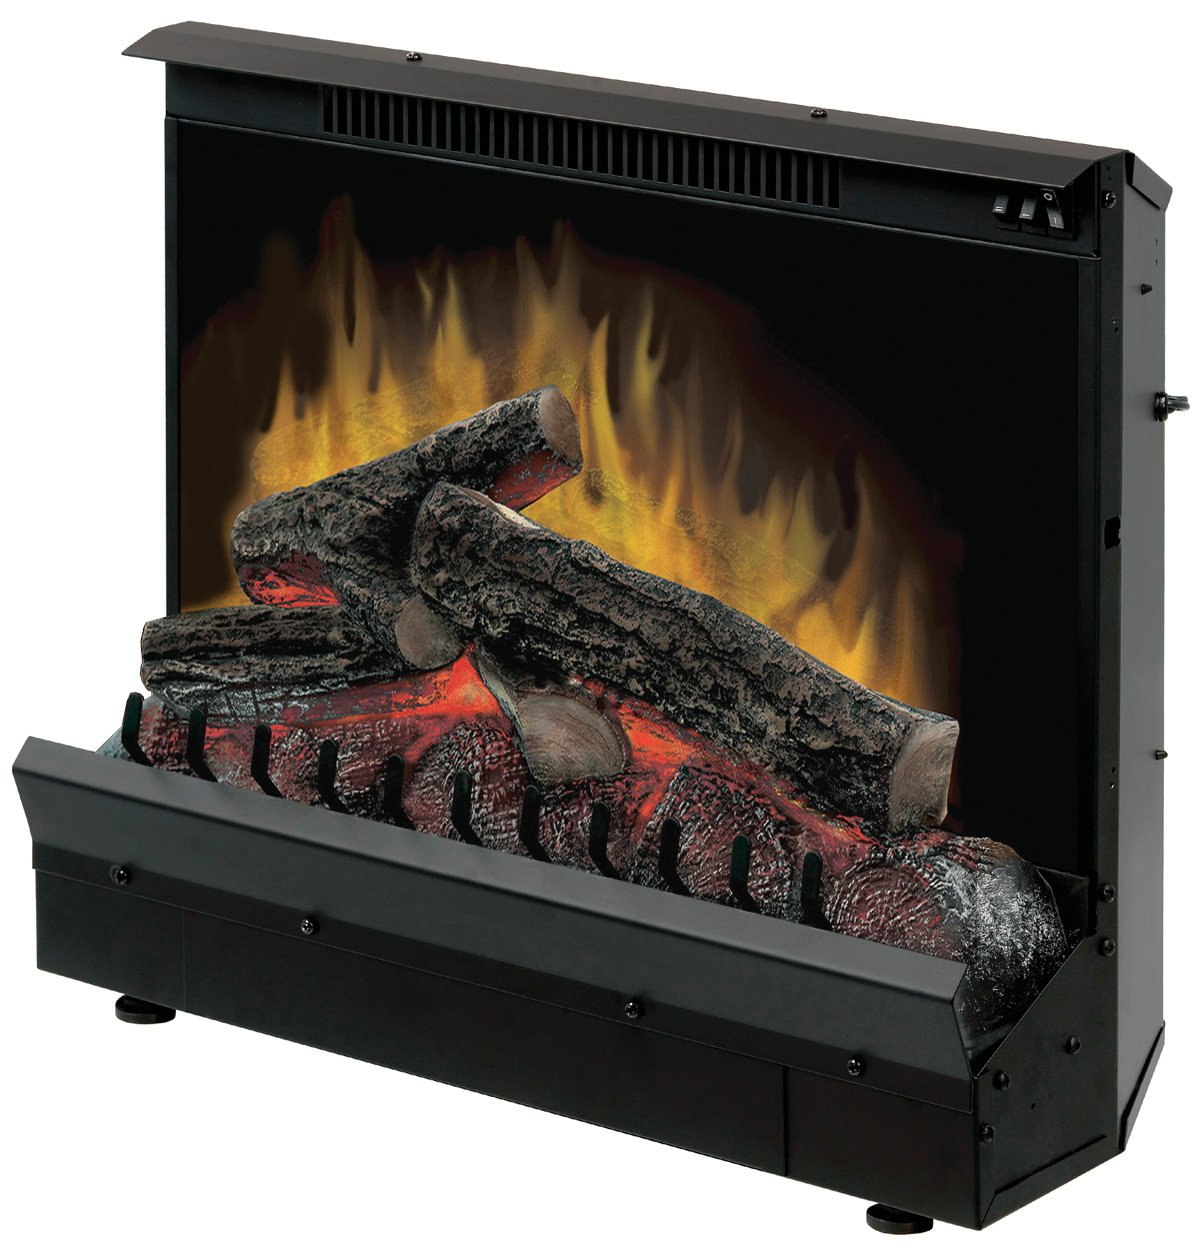 Fireplace Inserts | Gas, Wood Burning, Electric Fireplace Inserts 2014